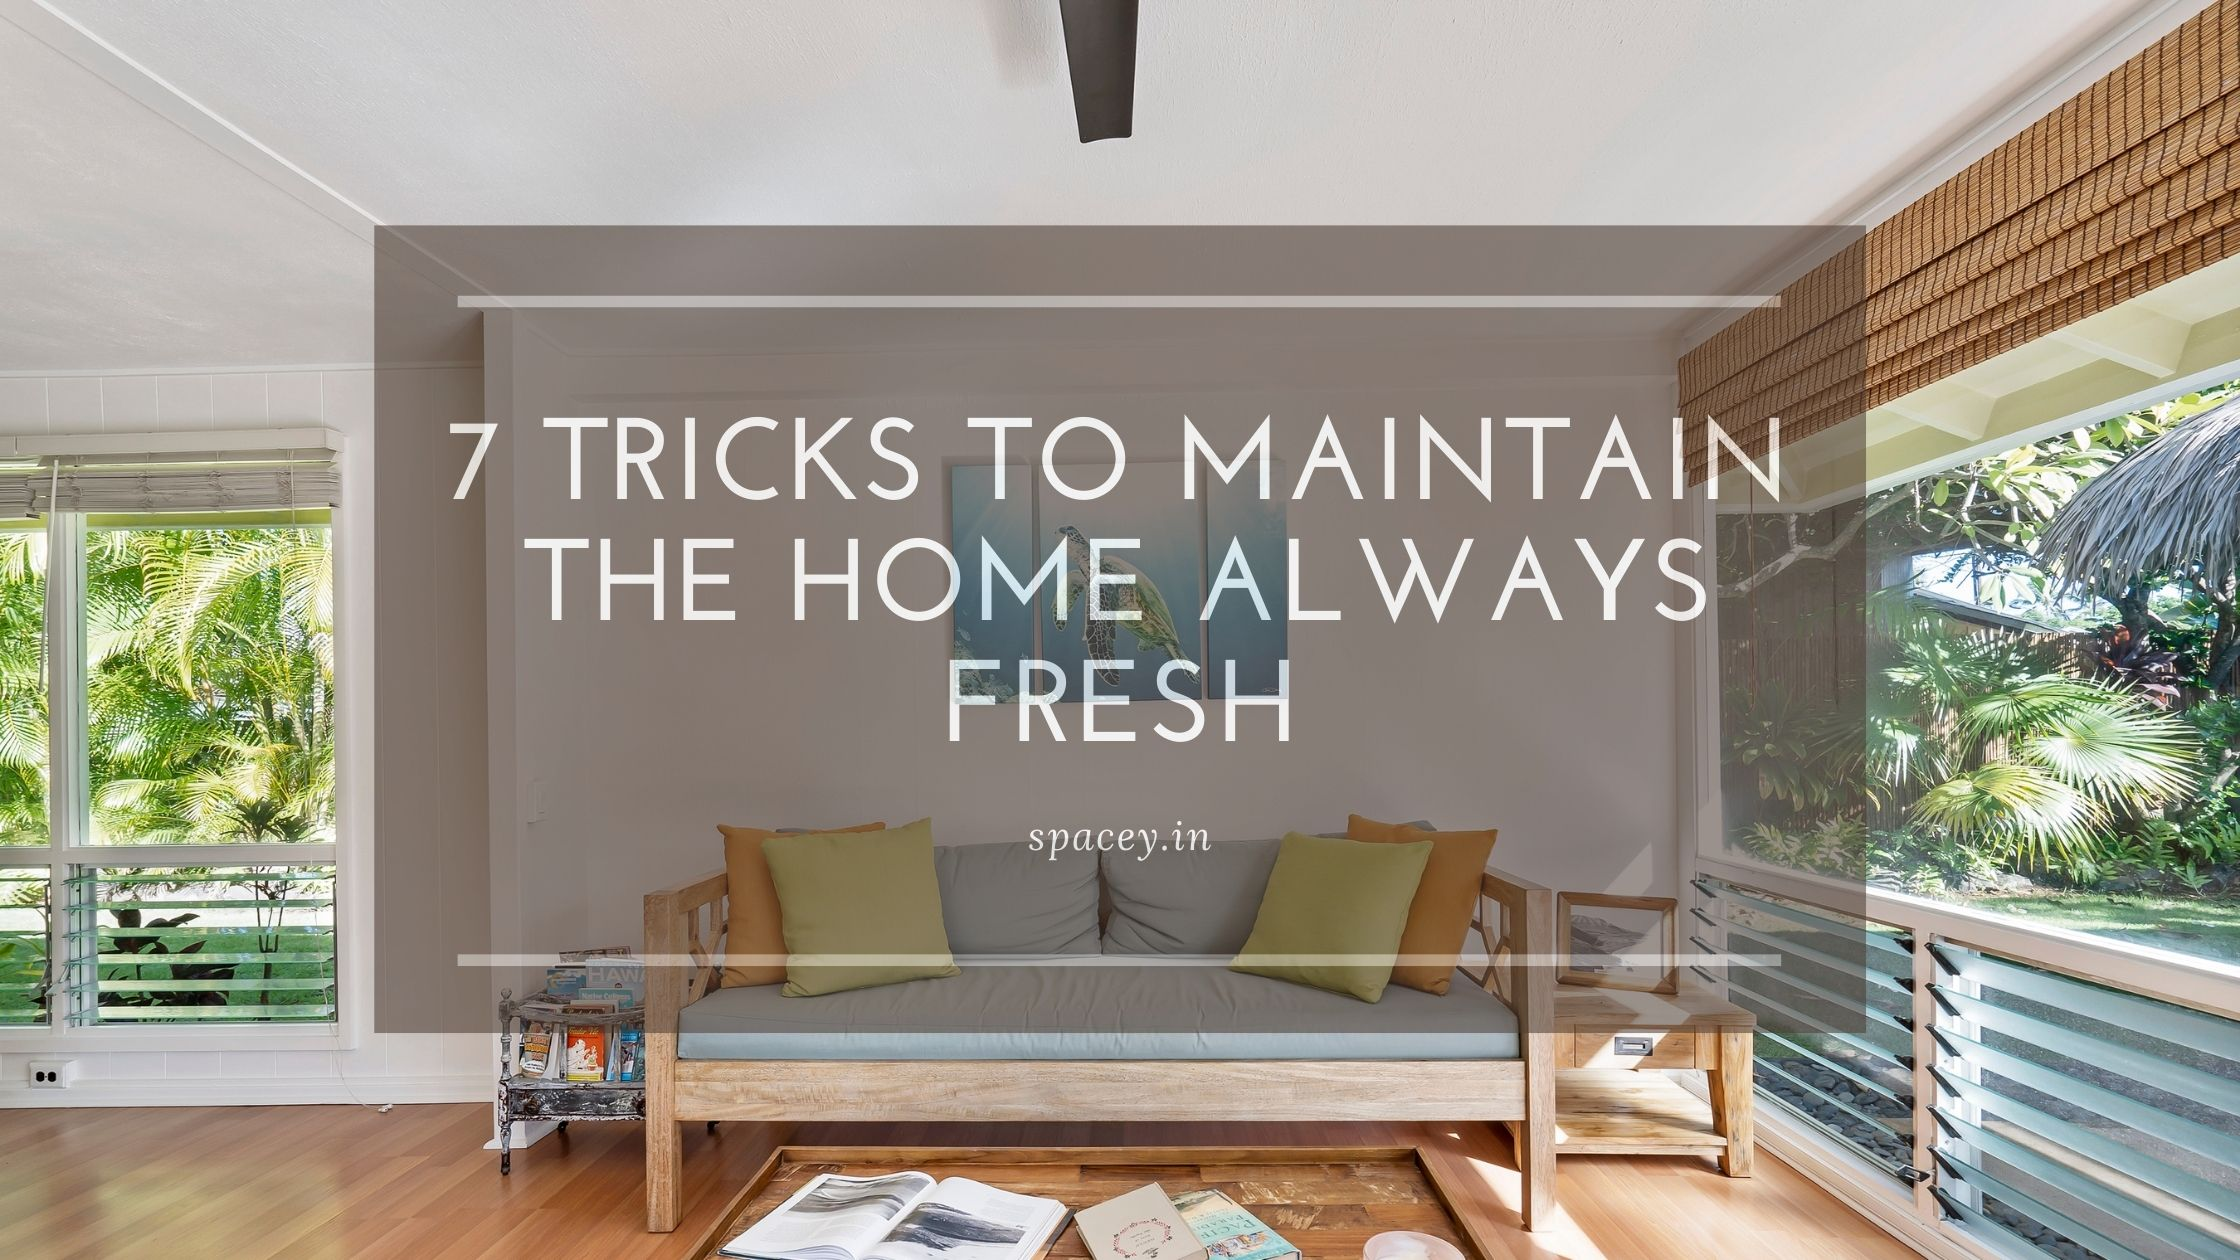 7 TRICKS TO MAINTAIN THE HOME ALWAYS FRESH